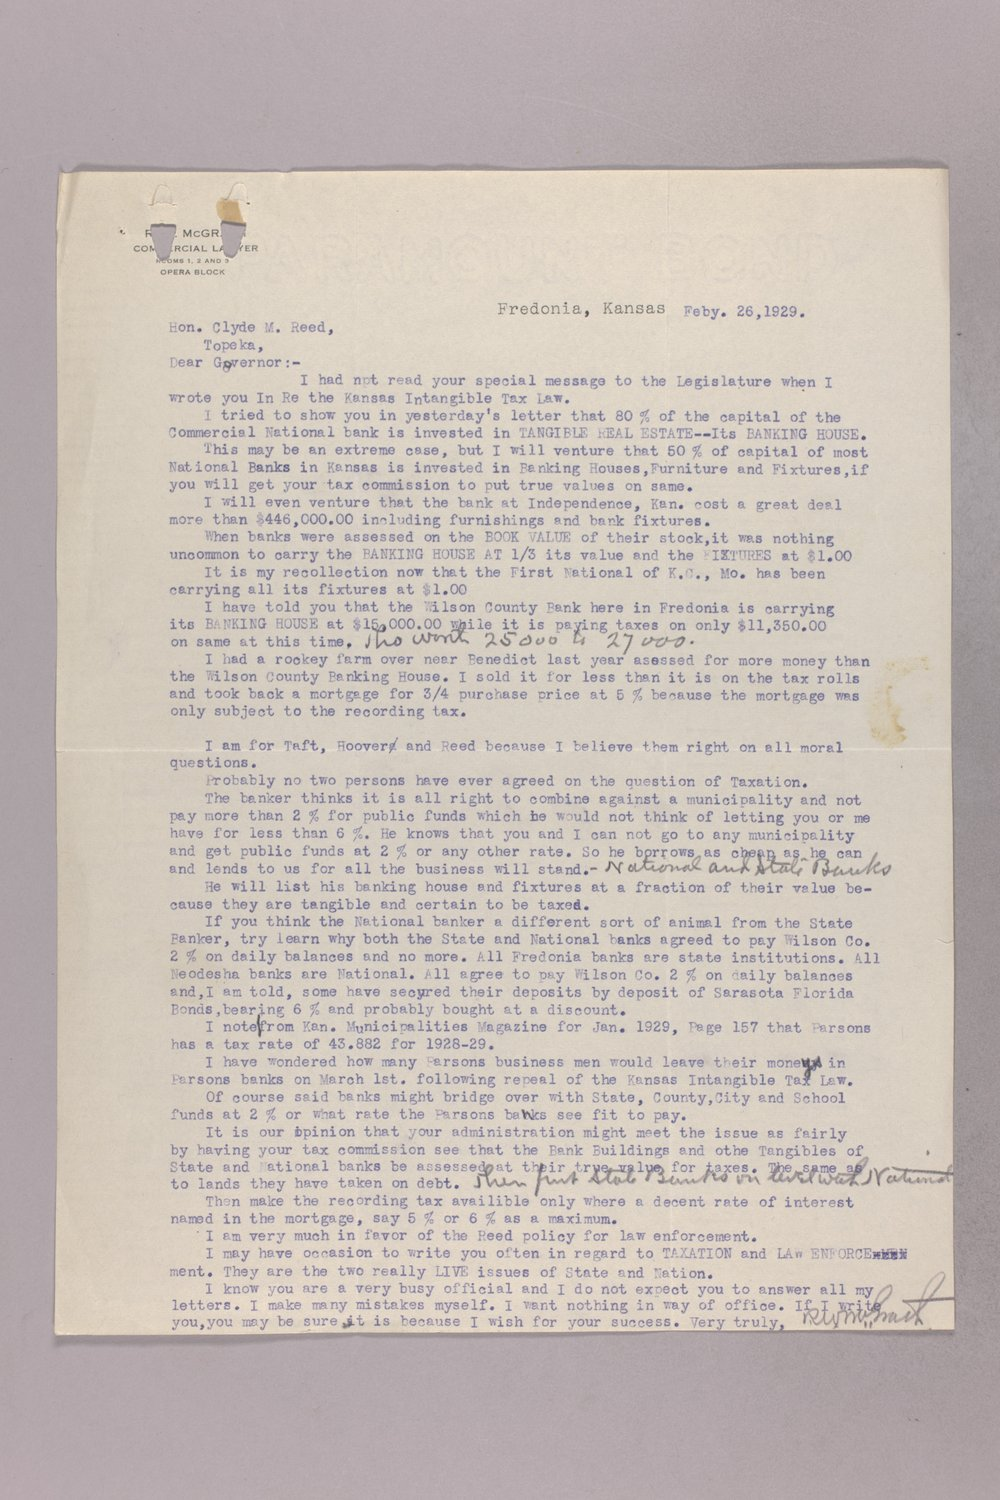 Governor Clyde M. Reed correspondence, tax matters - 11